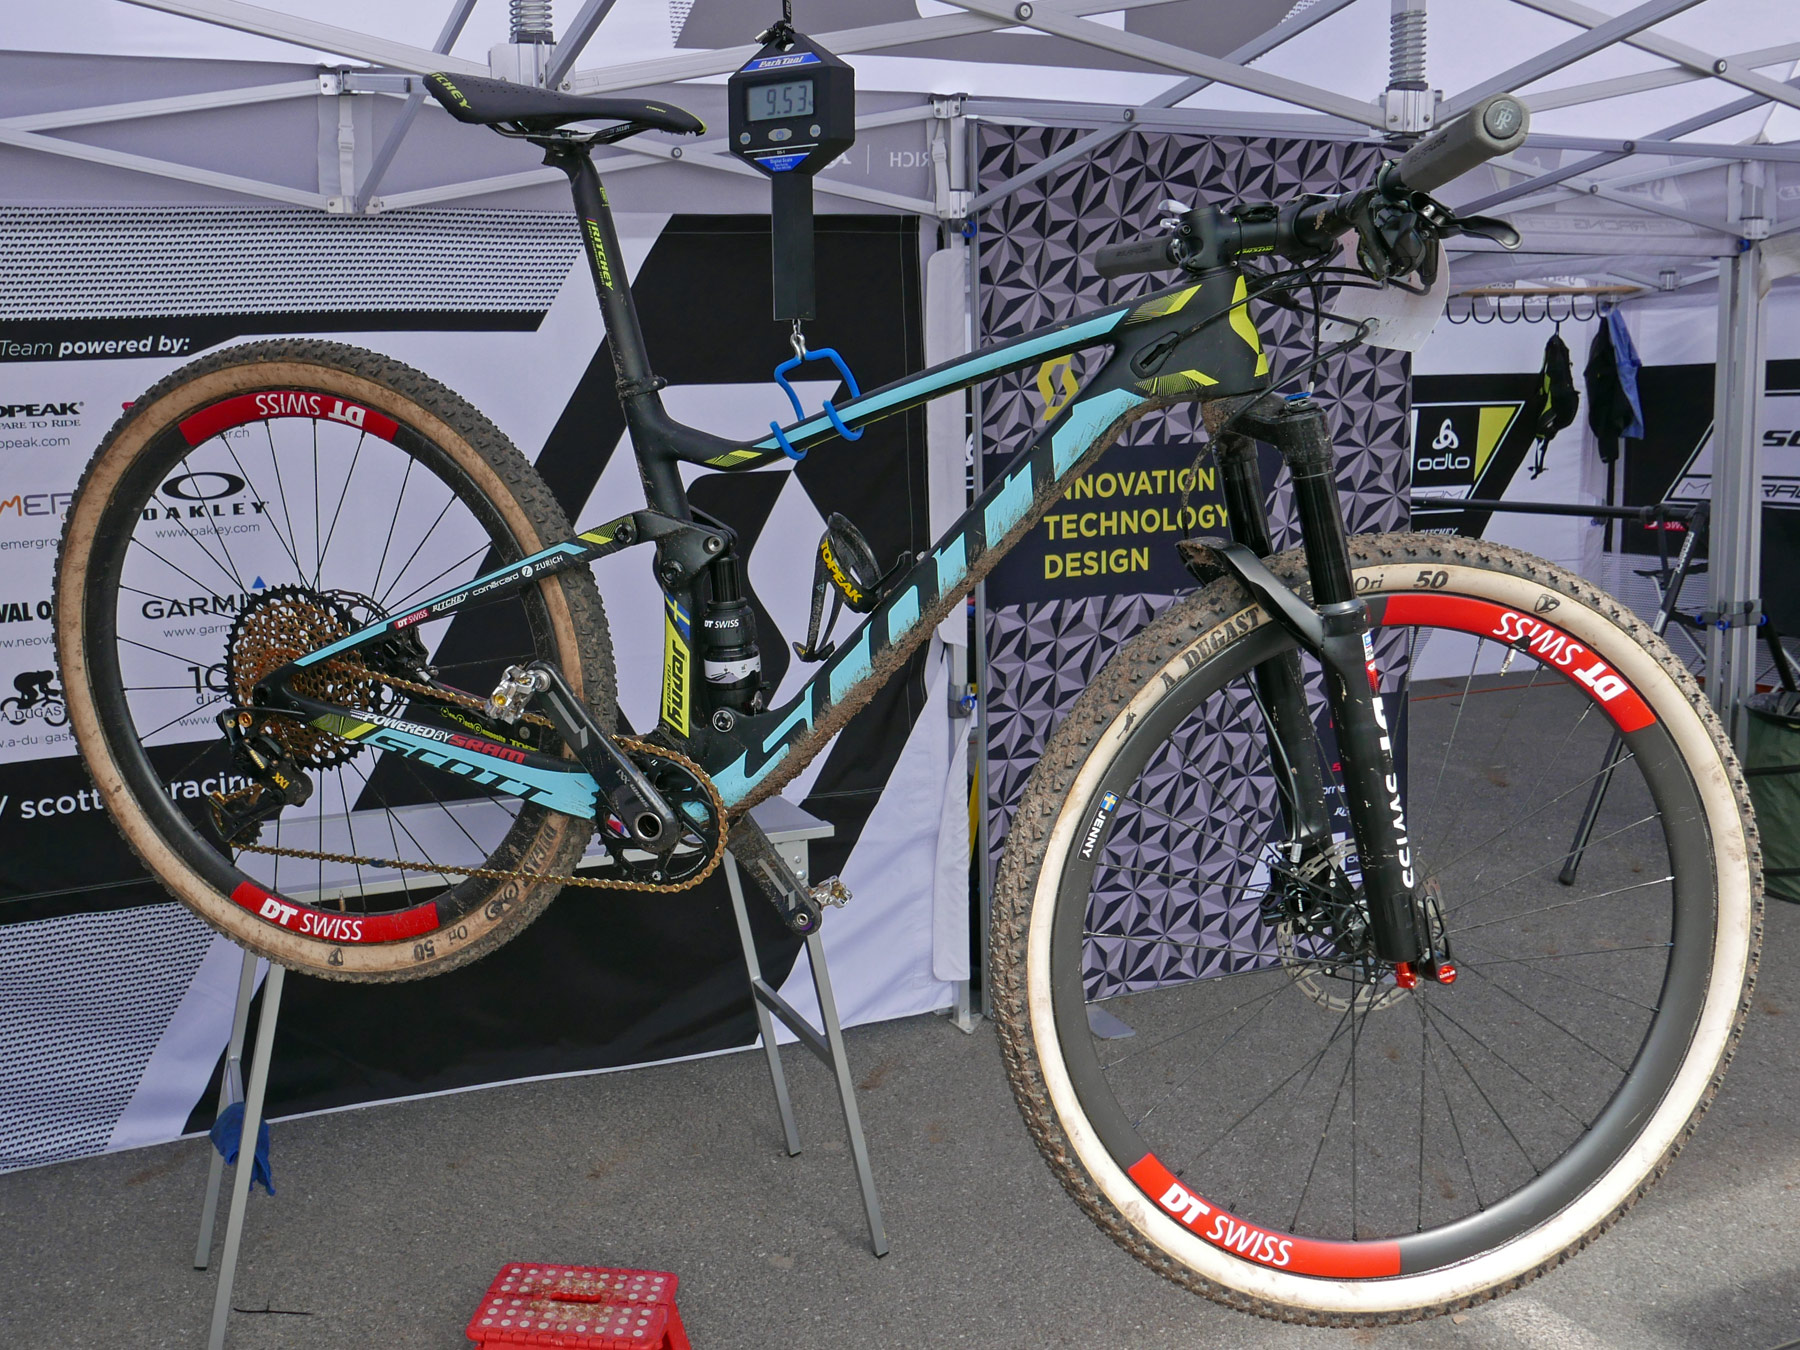 Scott Spark Rc World Cup 2018 >> XC Pro Bike Check: new women's U23 World Champion Jenny Rissveds' Scott Spark RC 700 World Cup ...